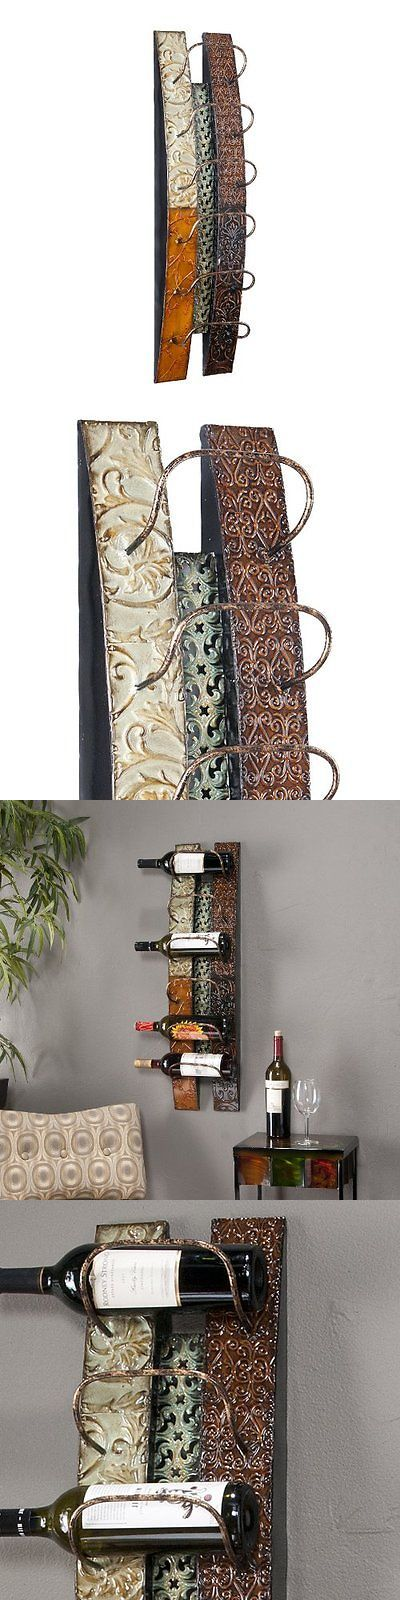 Wine Racks and Bottle Holders 20689: Adriano Wall-Mount Wine Storage New -> BUY IT NOW ONLY: $48.29 on eBay!